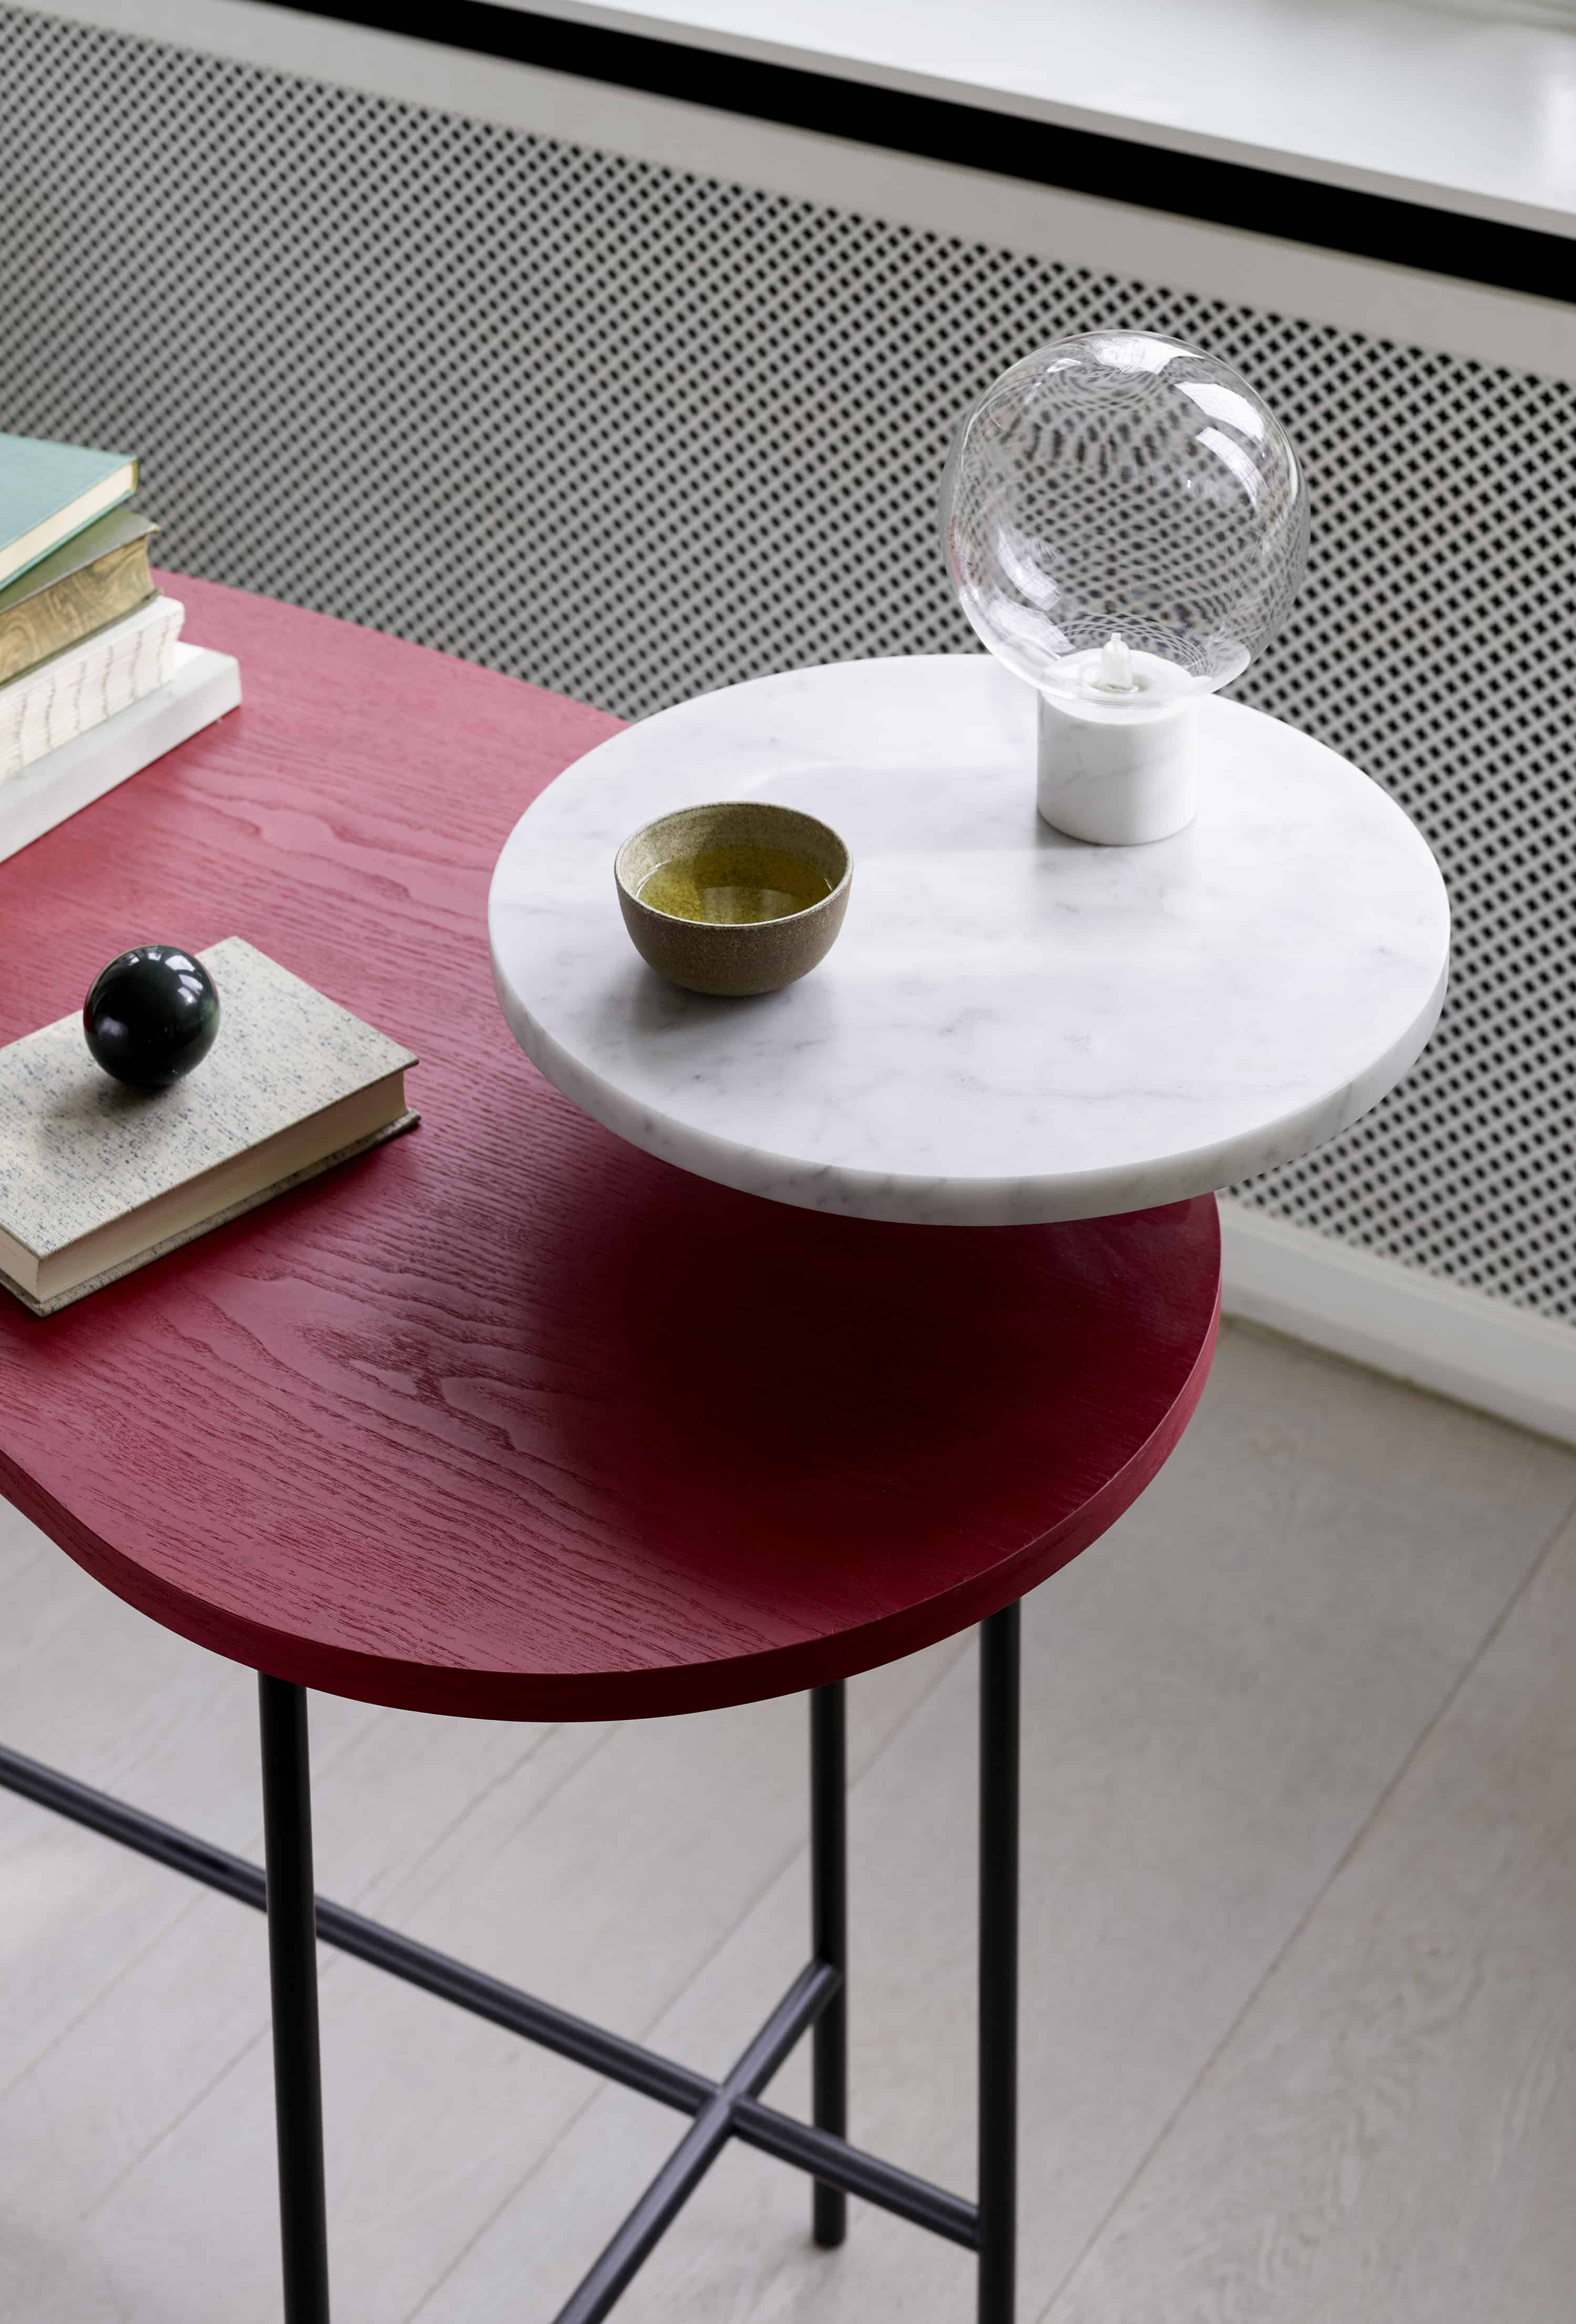 ATD_Location16.7_Palette_Desk_Marble_Light_Table